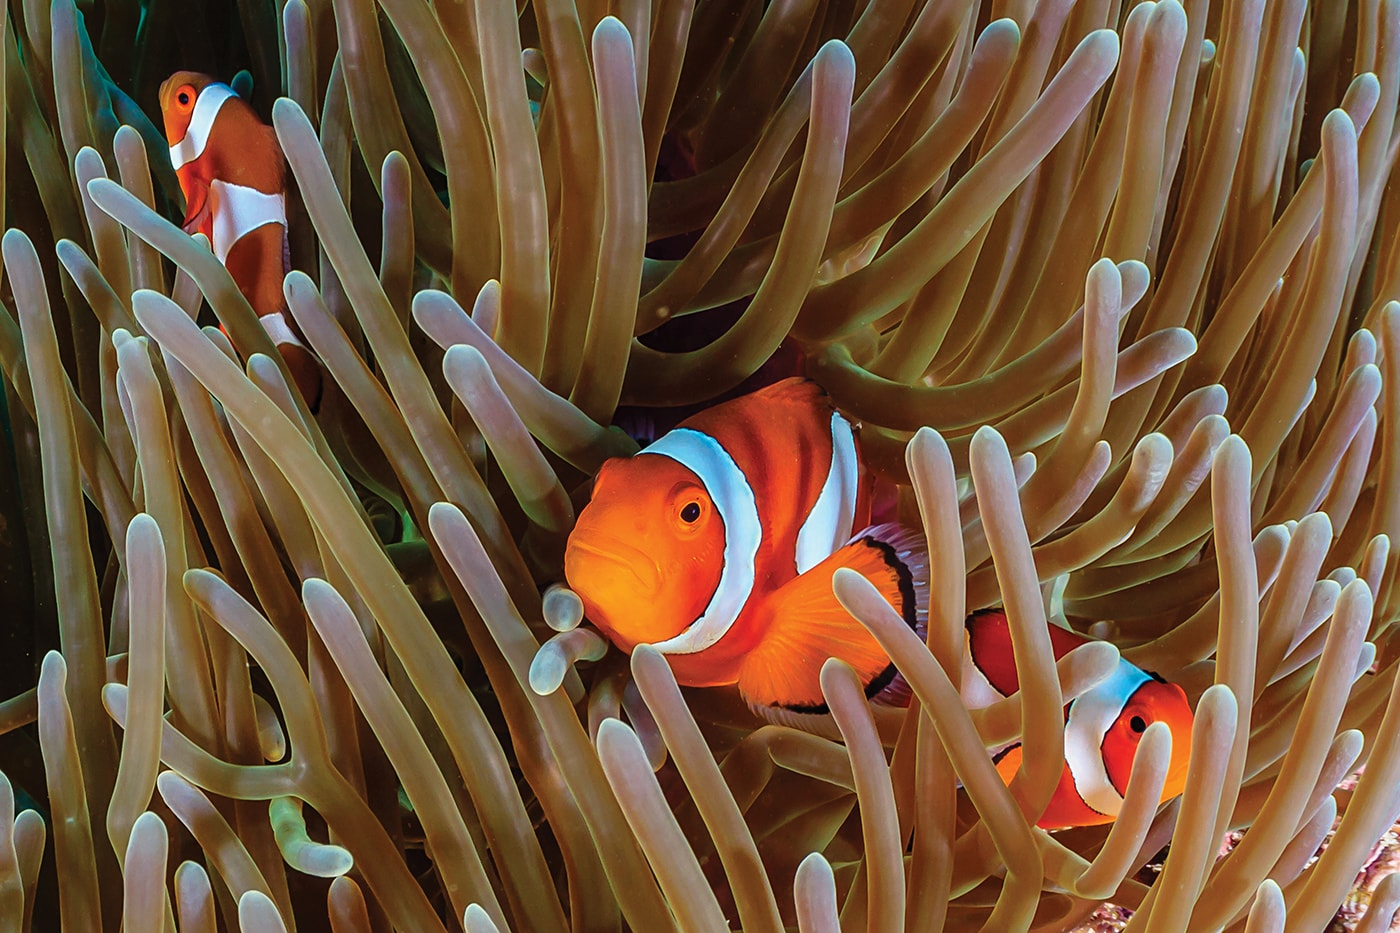 Like Nemo, their iconic animated counterpart, clownfish make their homes within the tentacles of anemones, which are common to the Great Barrier Reef.